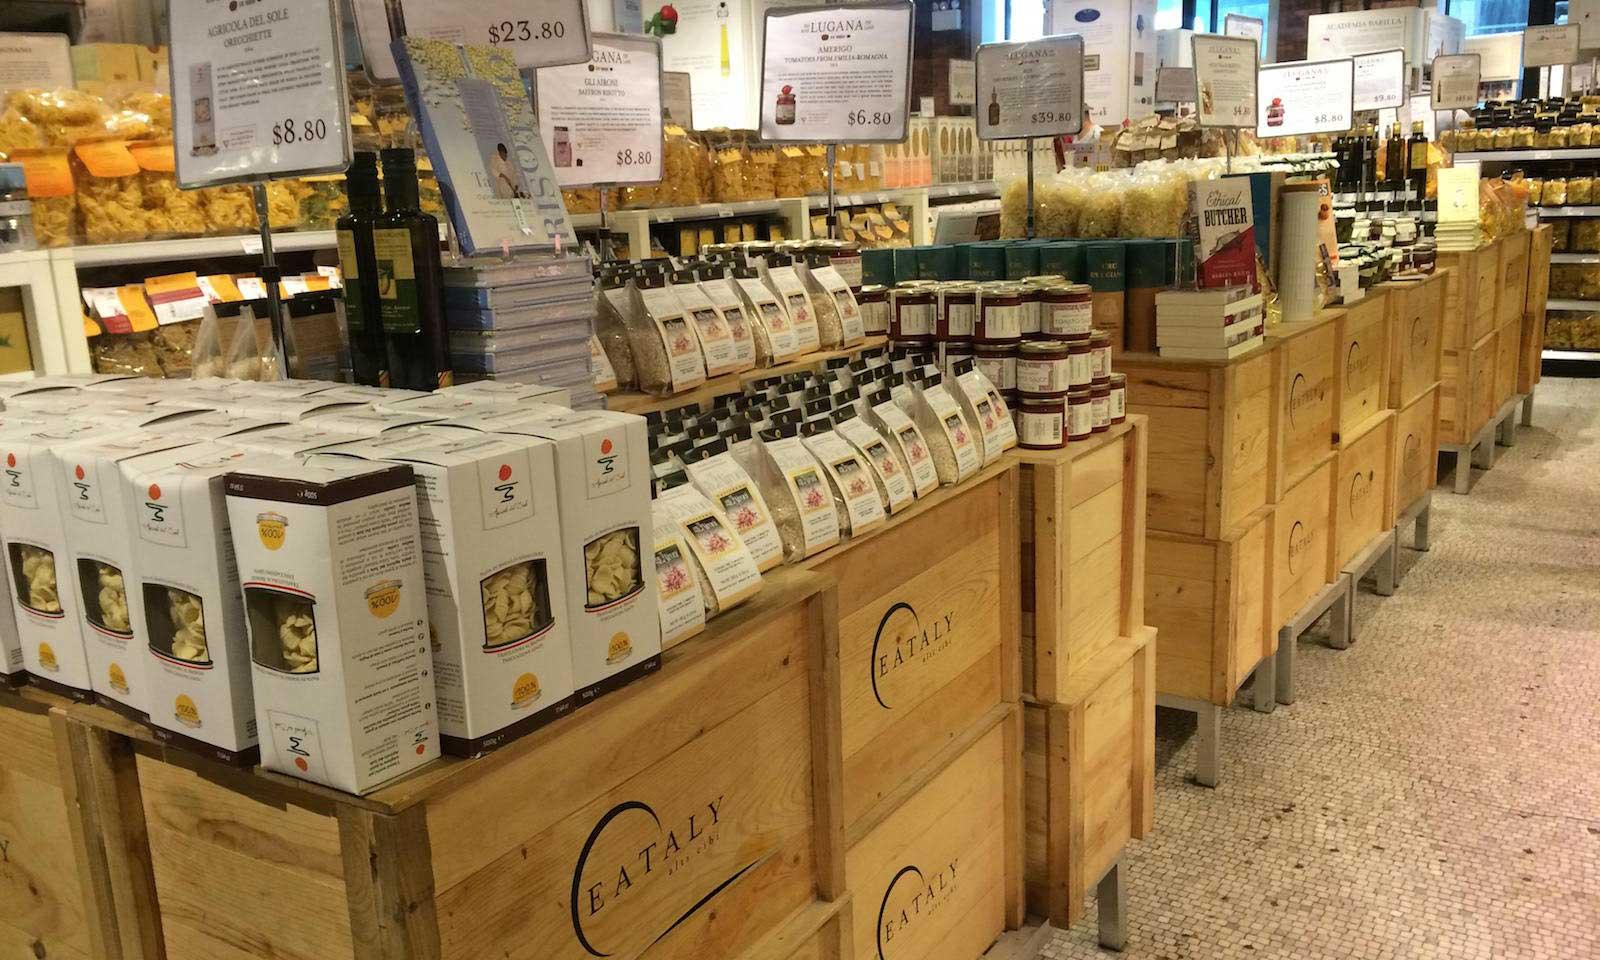 products at eataly